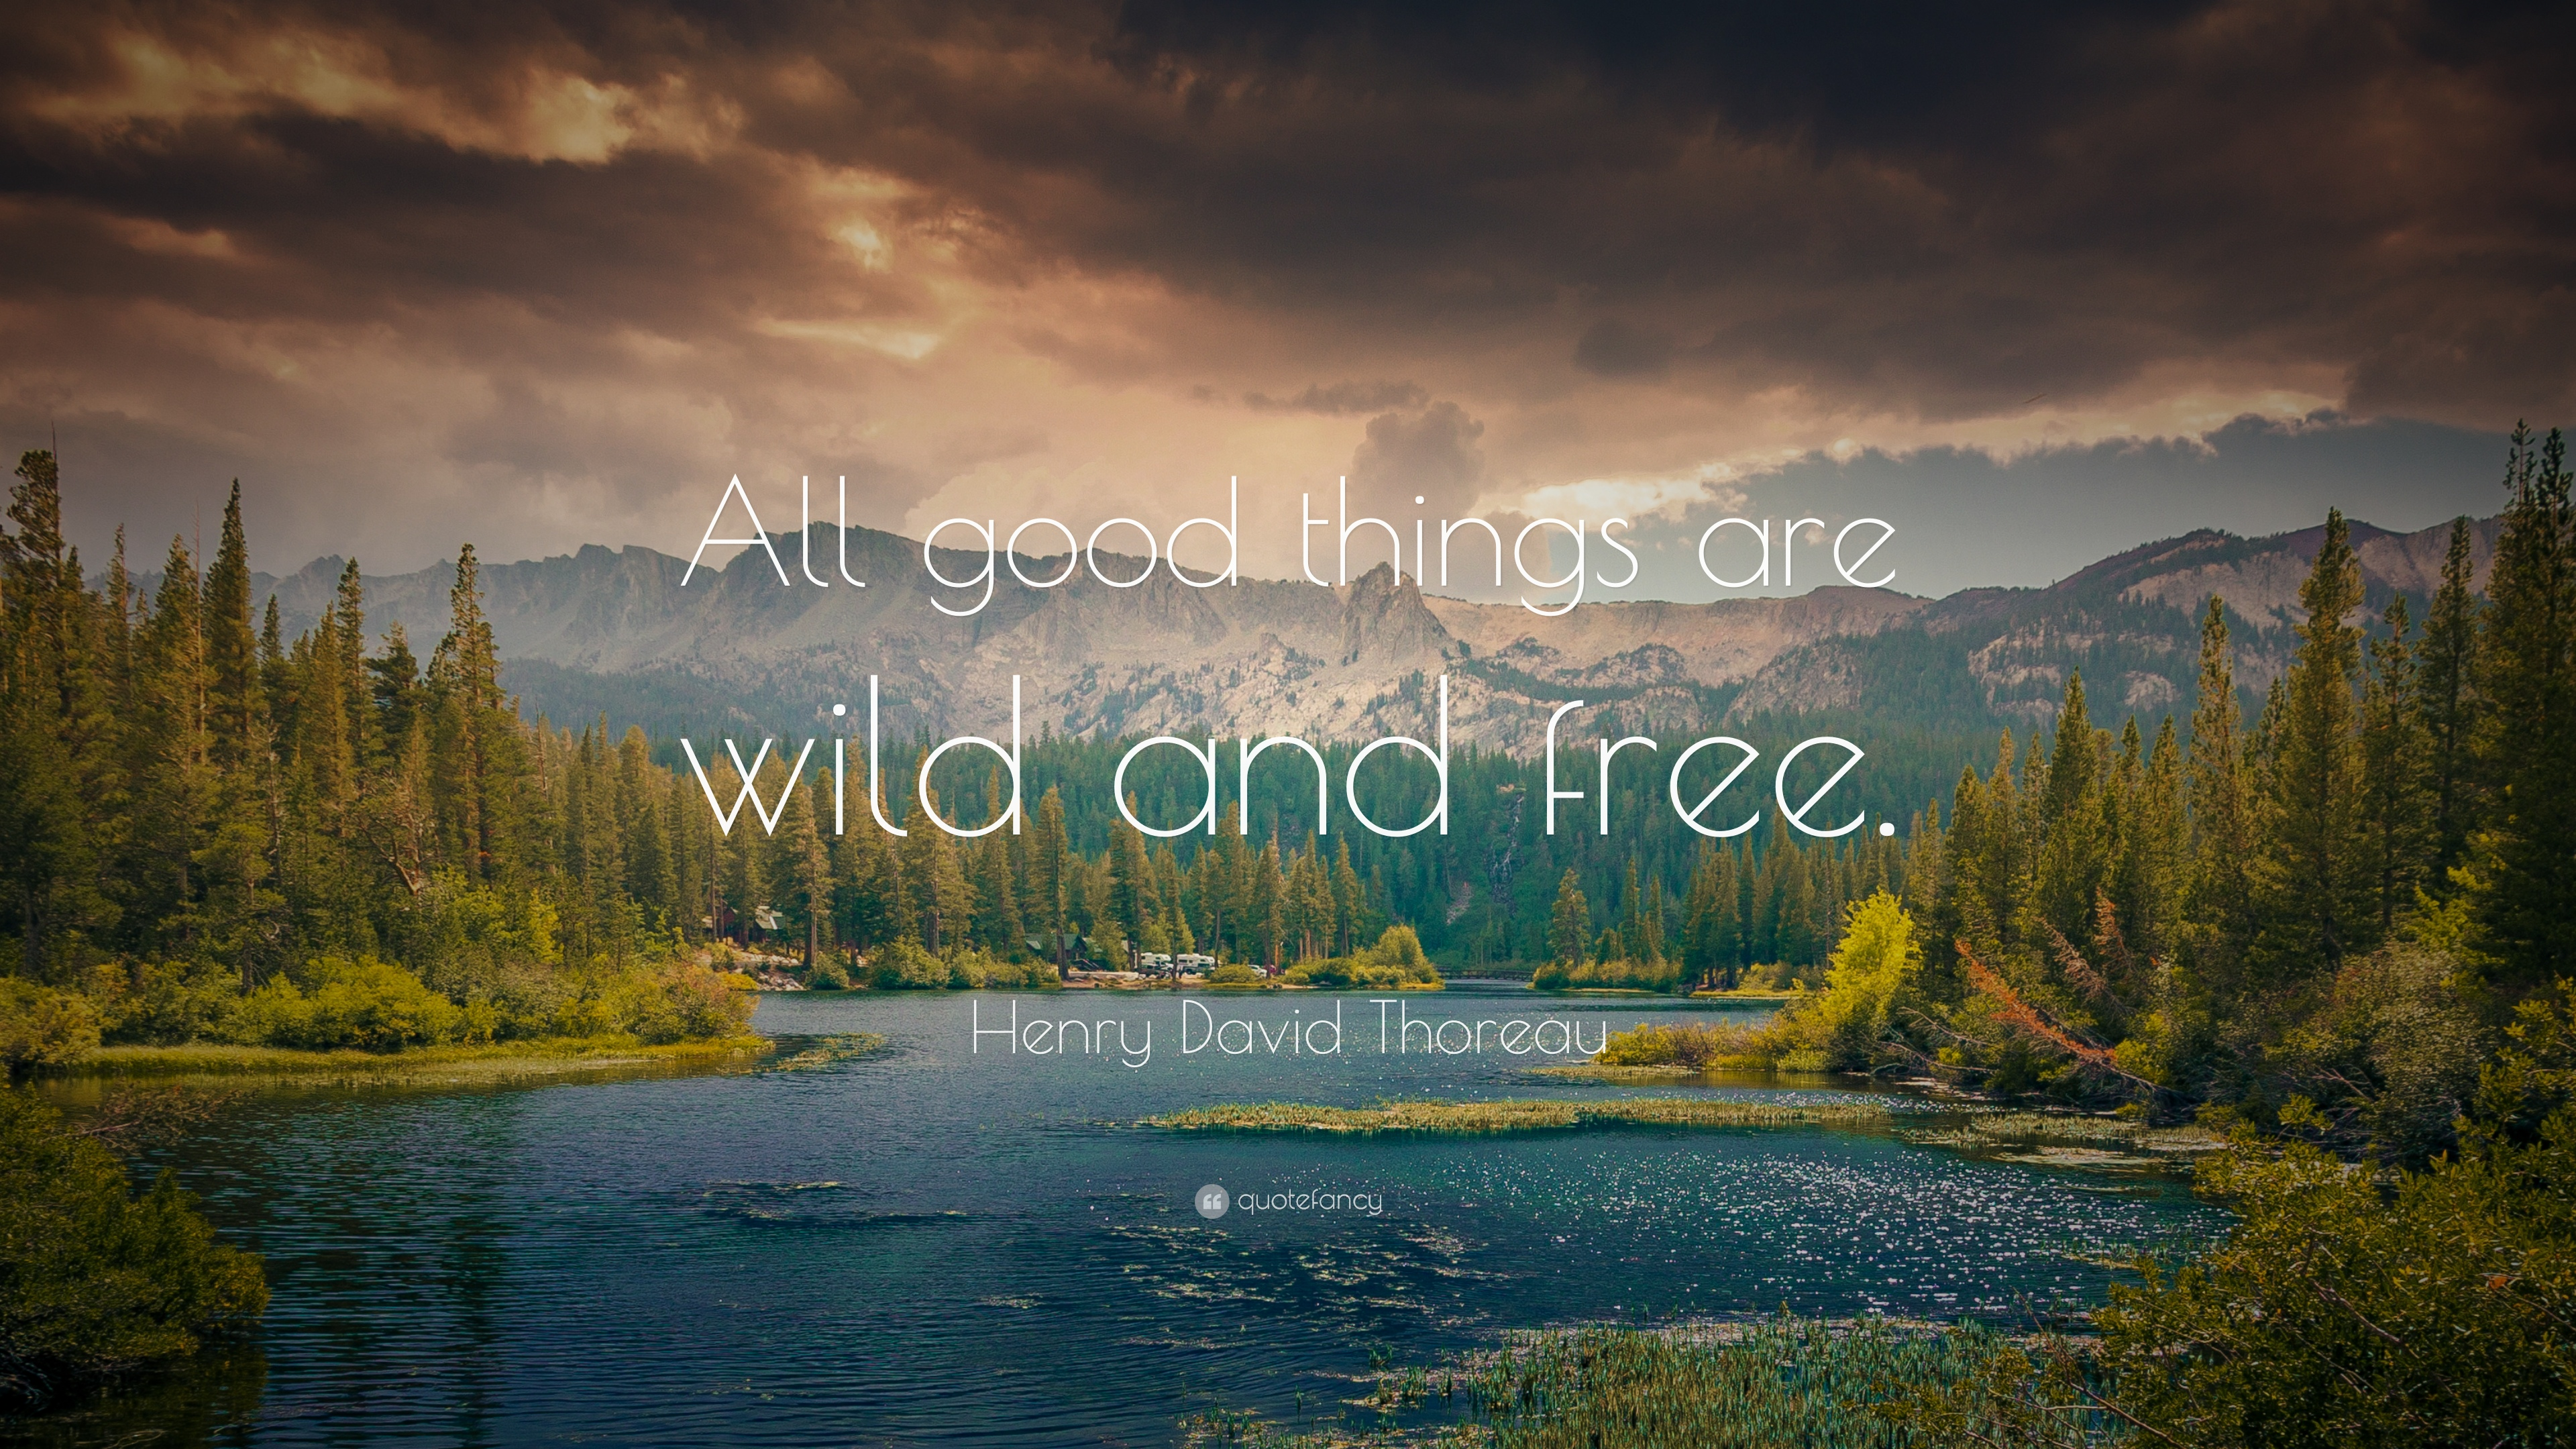 Henry david thoreau quote all good things are wild and free